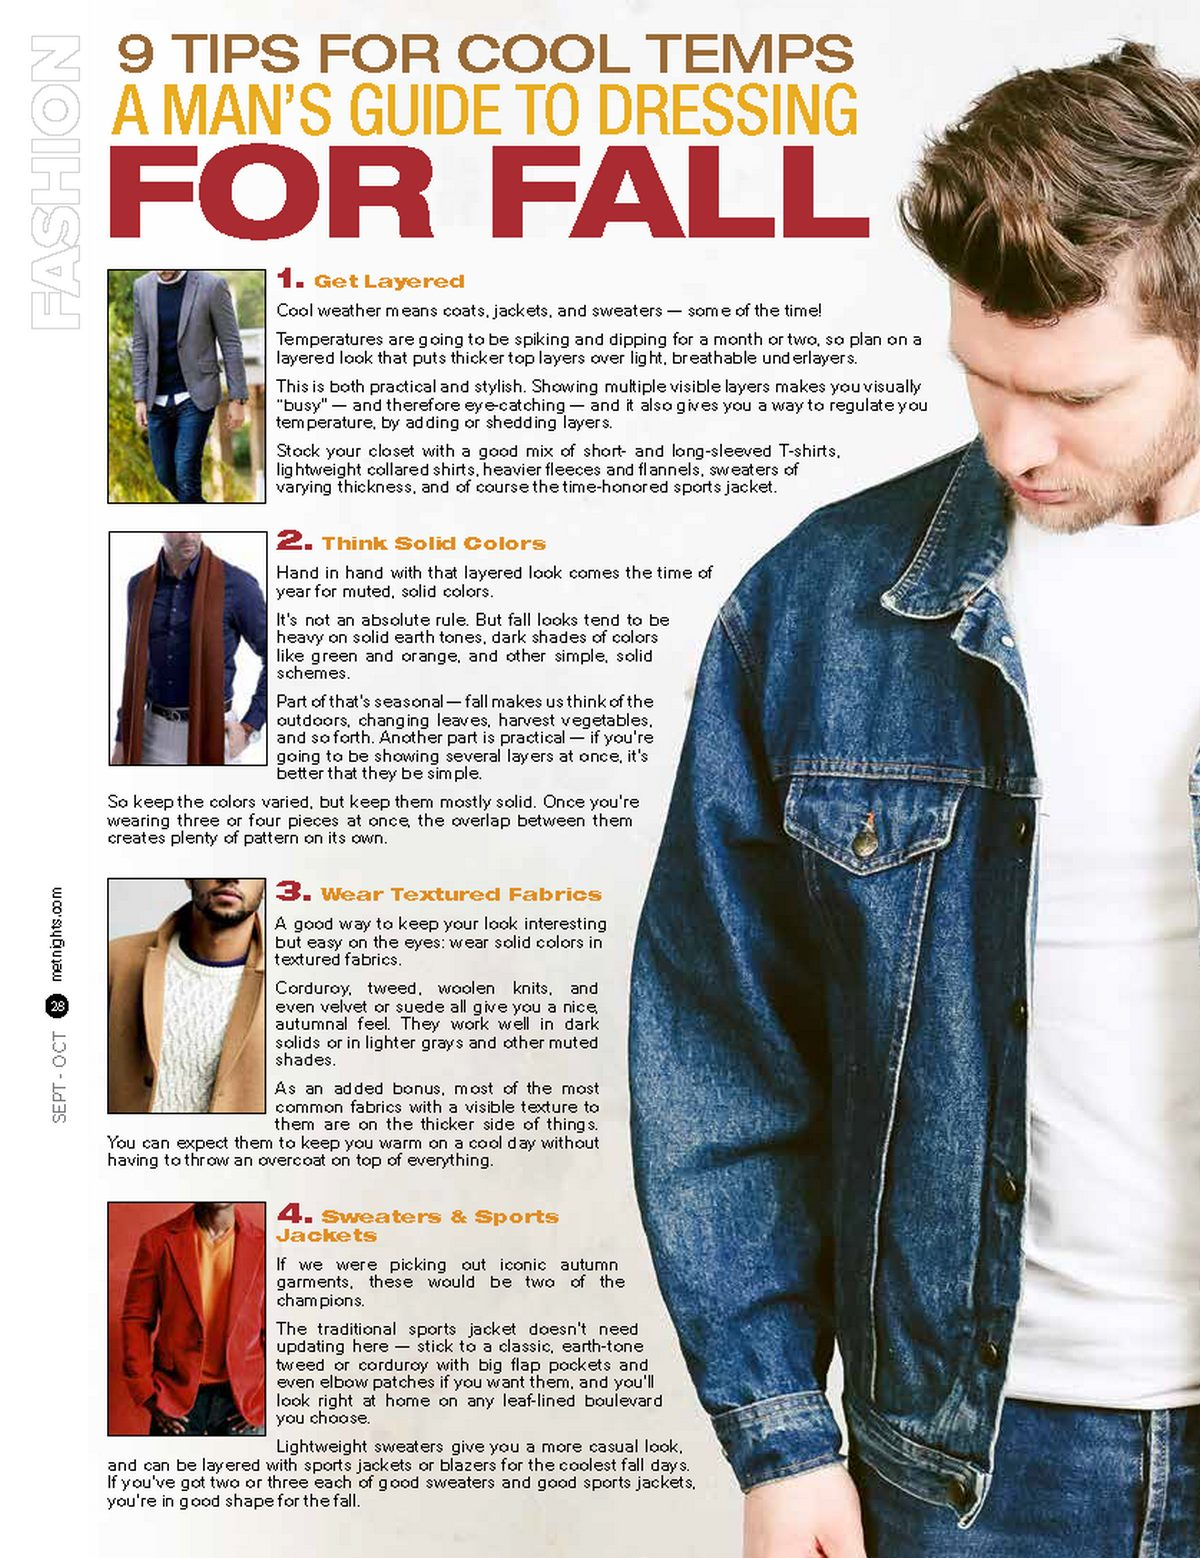 9 TIPS FOR COOL TEMPS A MAN'S GUIDE TO DRESSING FOR FALL